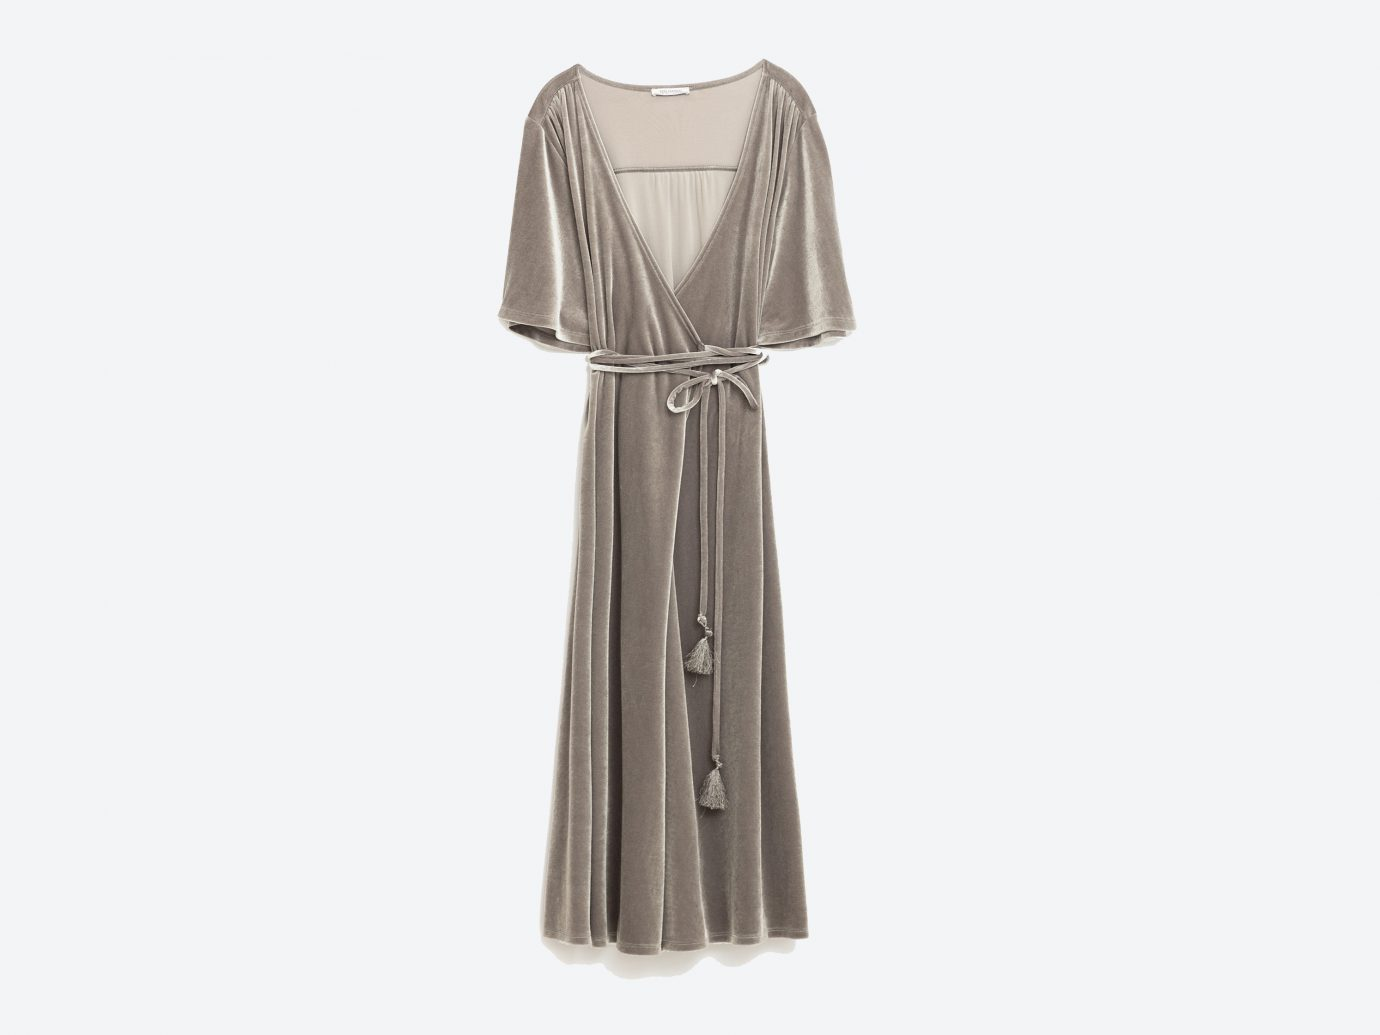 Style + Design clothing day dress dress gown wedding dress bridal clothing sleeve outerwear textile cocktail dress pattern formal wear